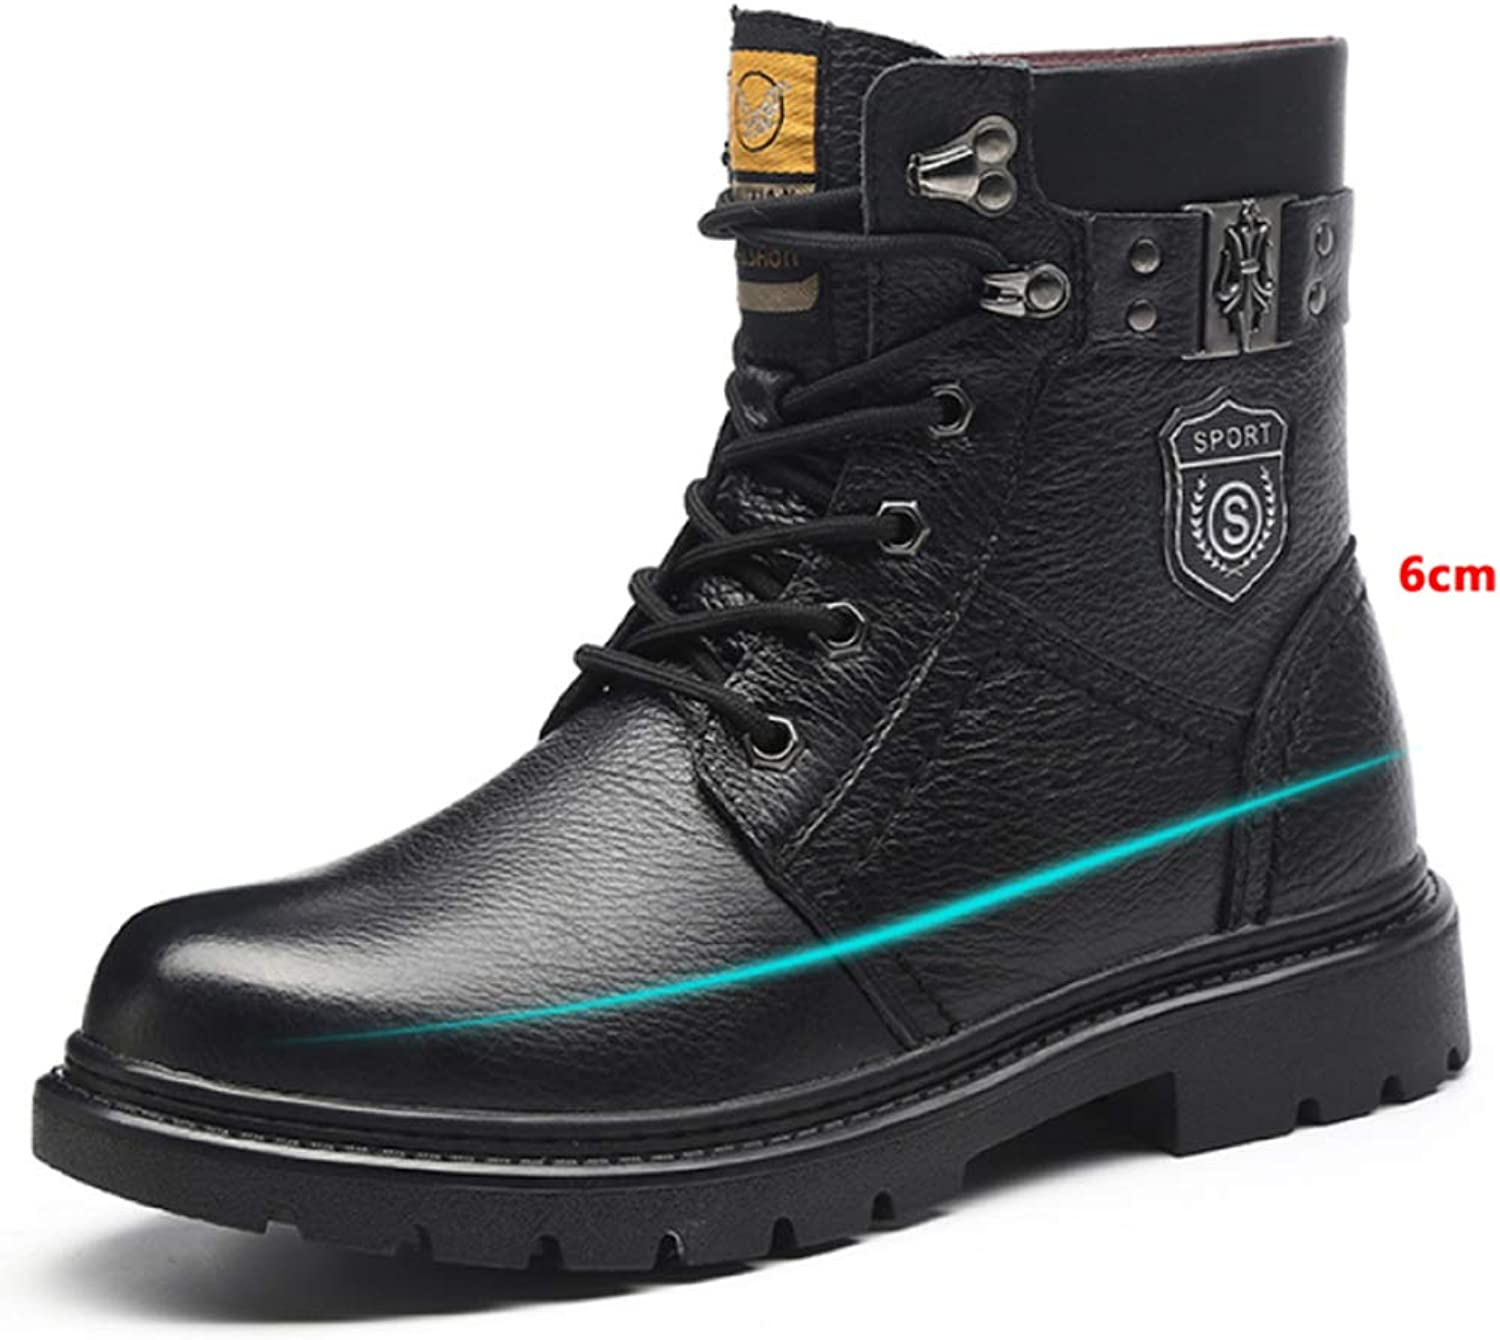 GTYW, Men's Winter Martin Boots, Waterproof Men's Warm Casual High shoes, Leather Boots, 37-45,Black-6cm-37